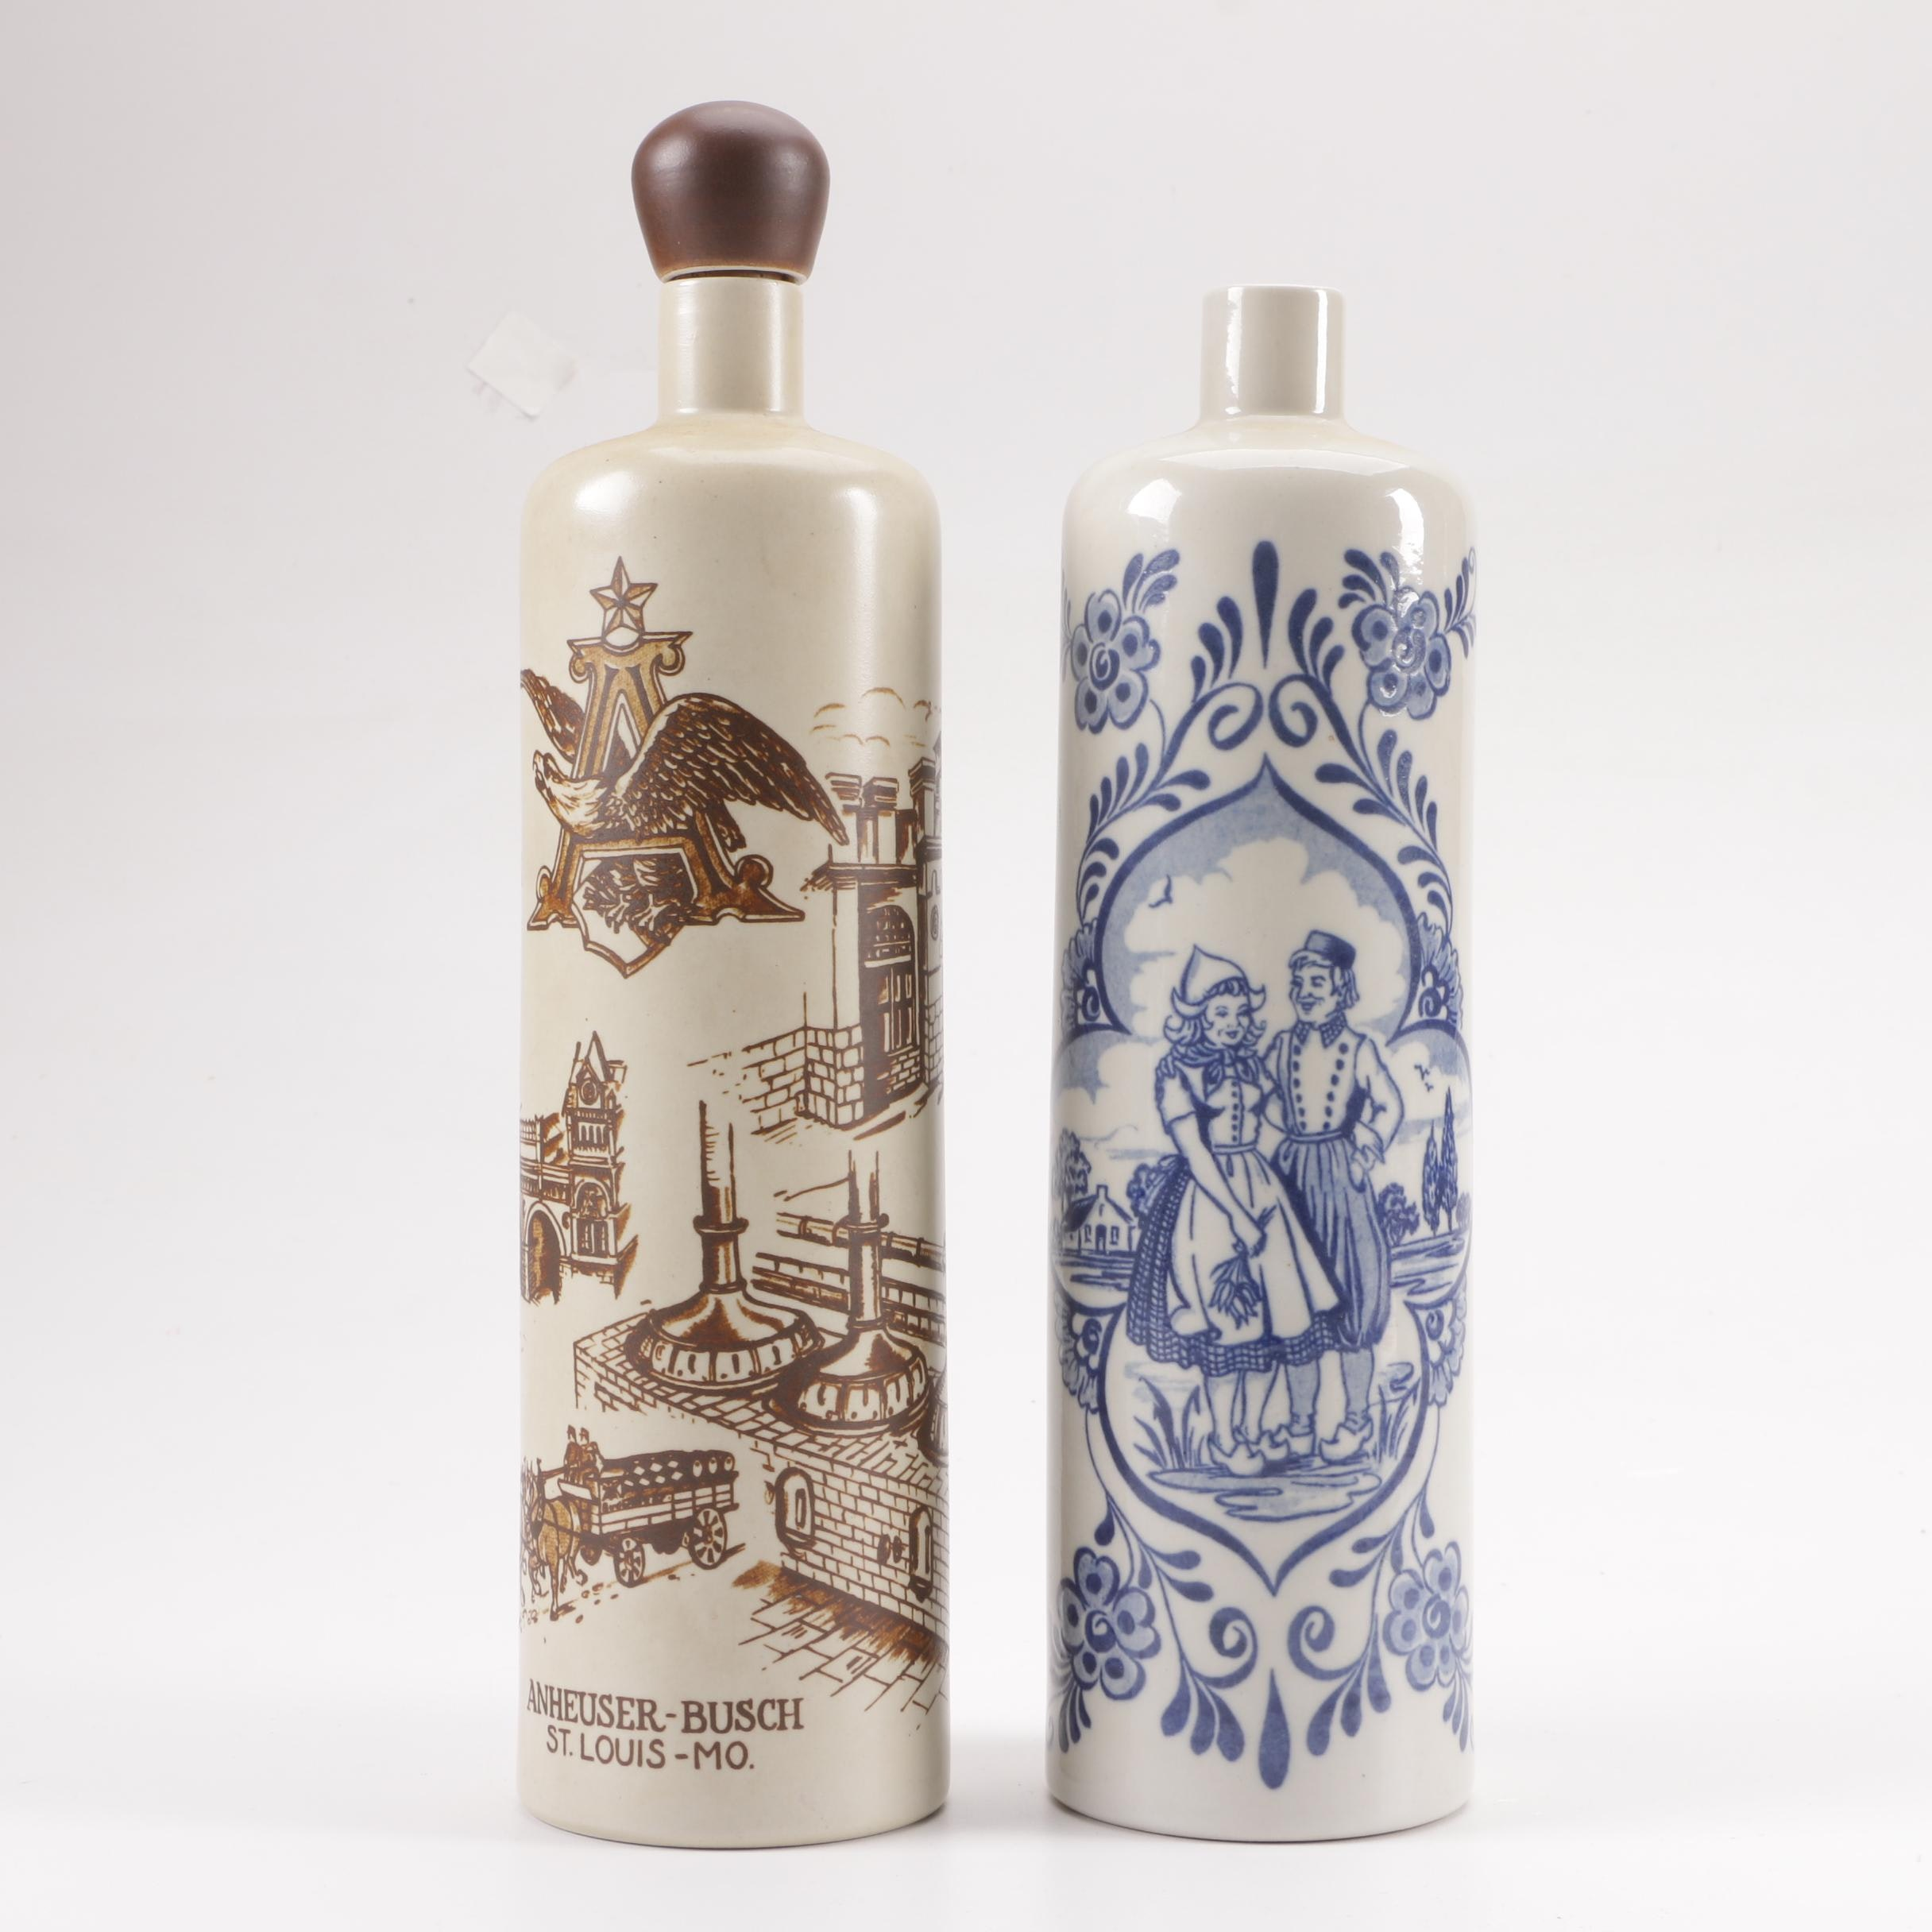 Ceramic Decanters featuring Anheuser-Busch